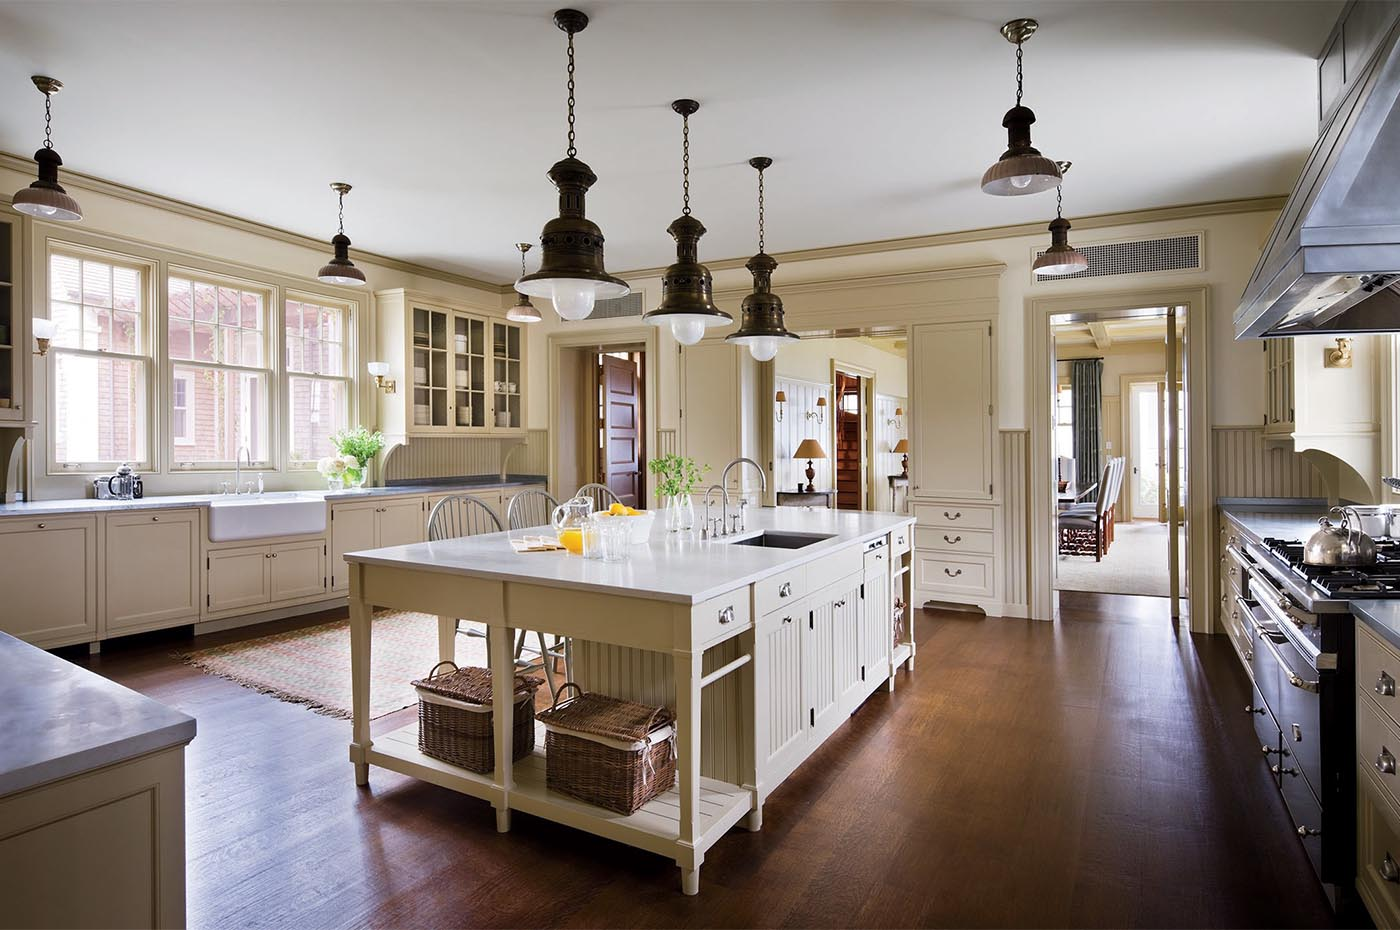 ... Decorated By Victoria Hagan Interiors, The Customized Cabinetry By  Ferguson U0026 Shamamian Meets The Vintage Italian Hanging Lights In The Sunlit  Kitchen.